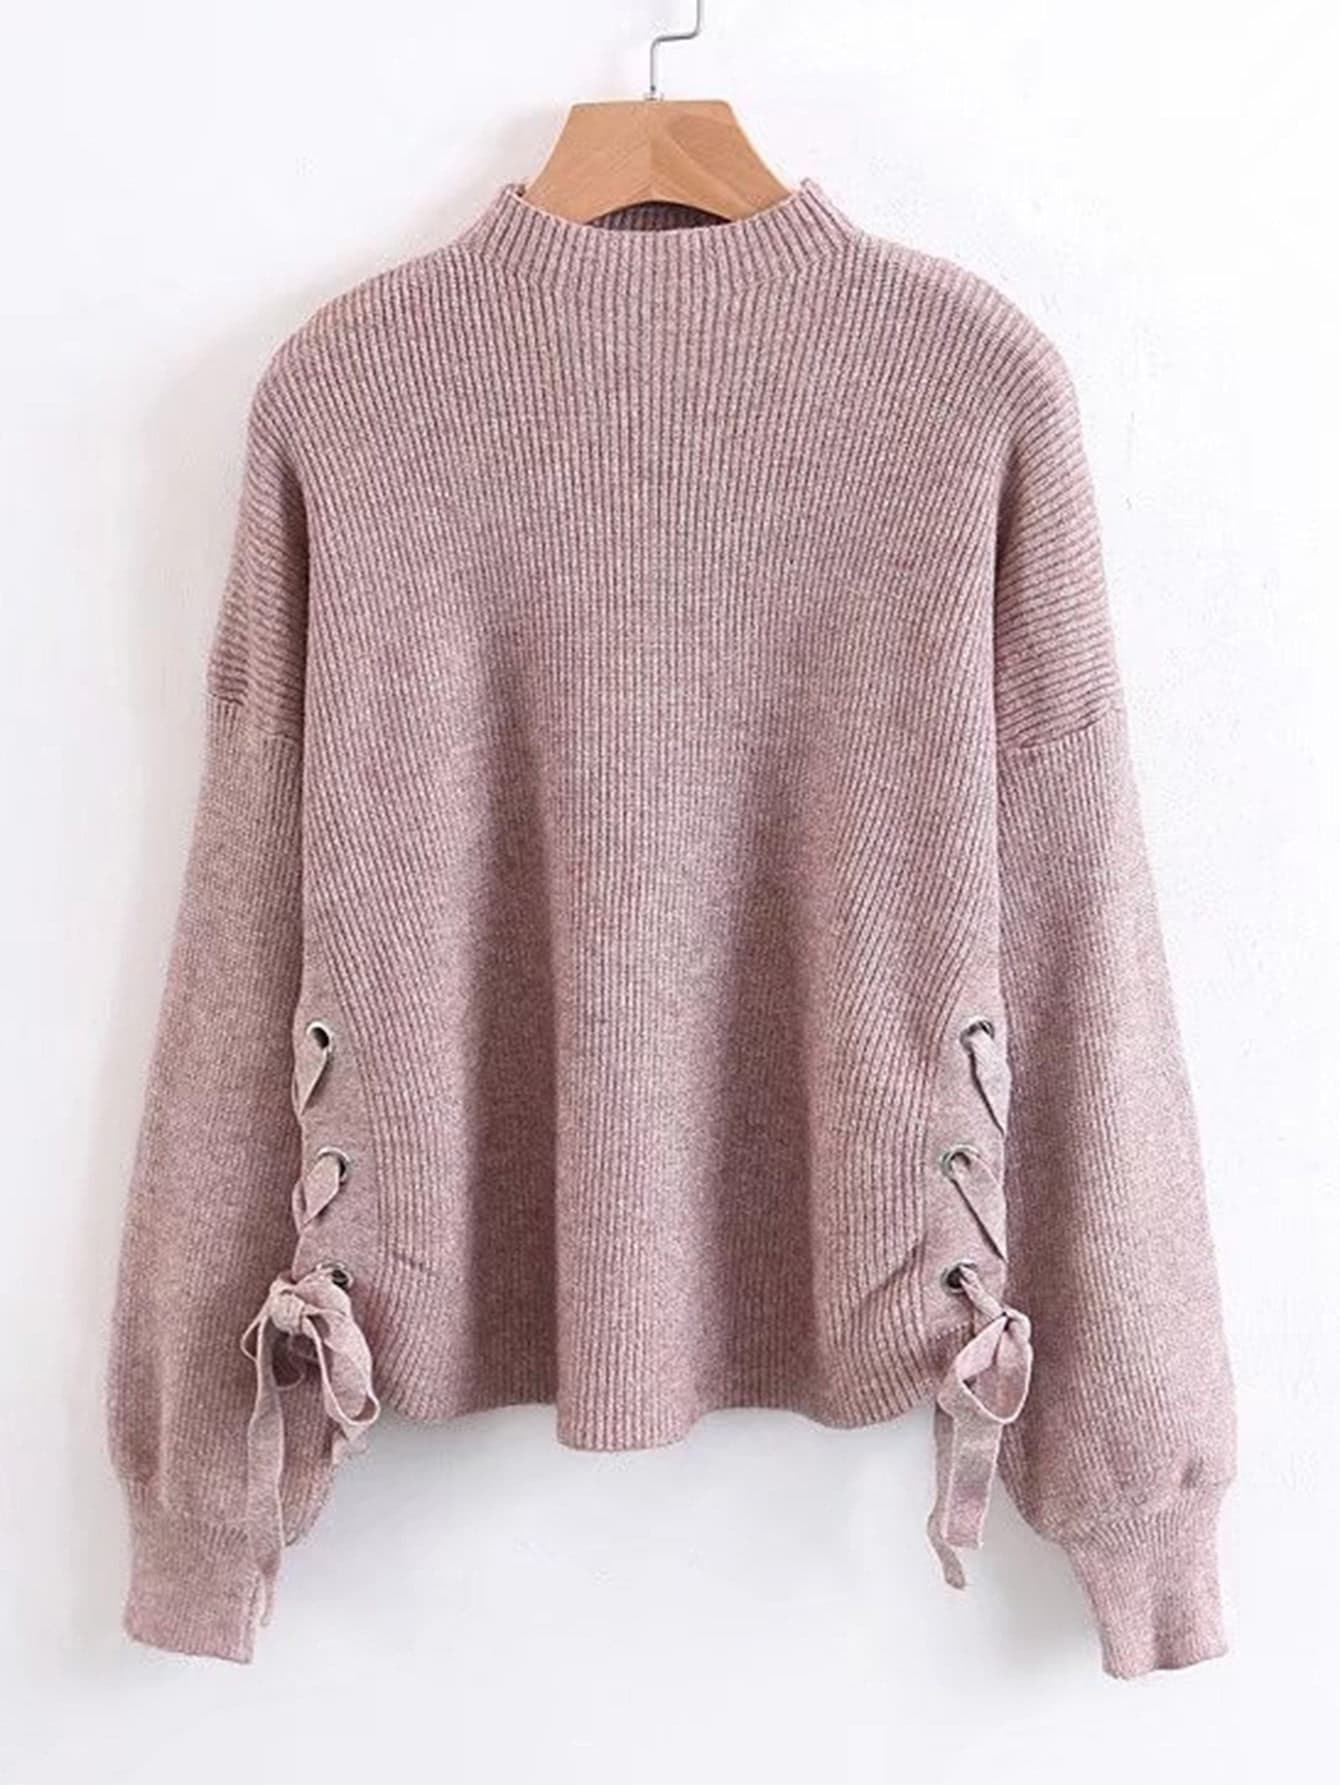 Lace Up Side Ribbed Knit Sweater sweater171012204